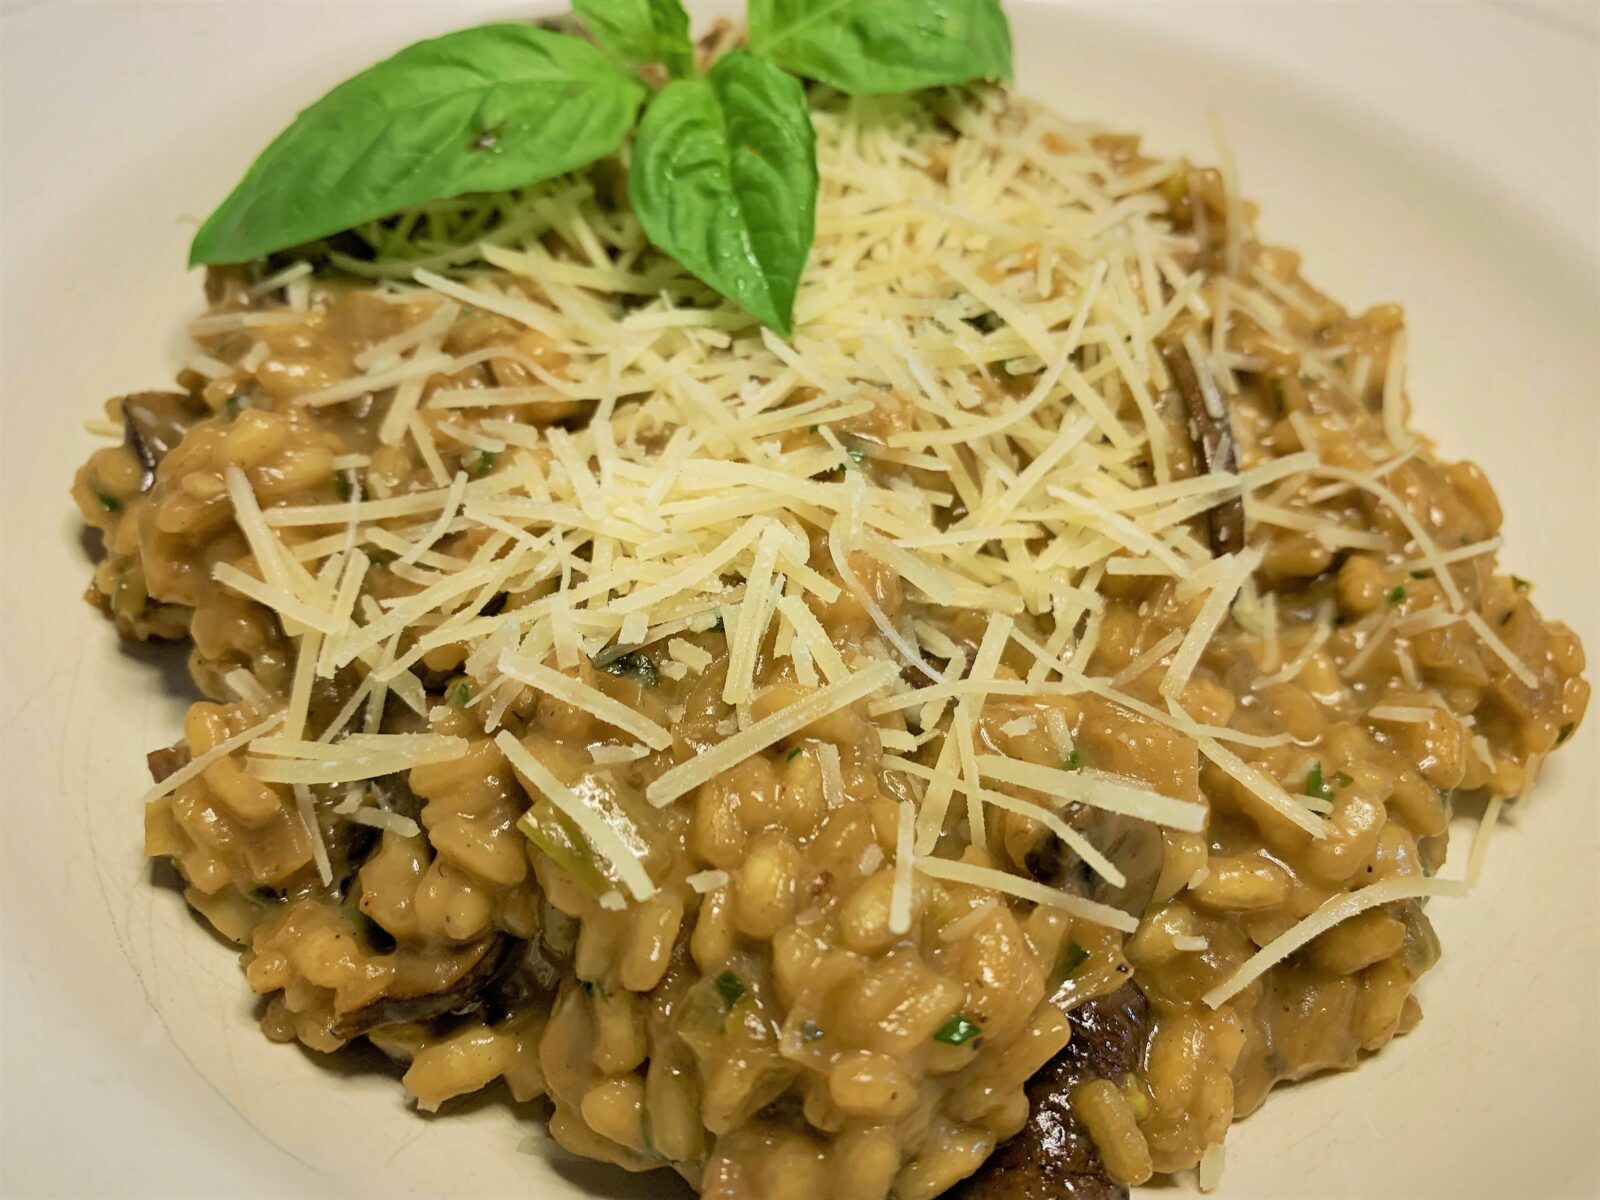 Our completed WIld Mushroom Risotto